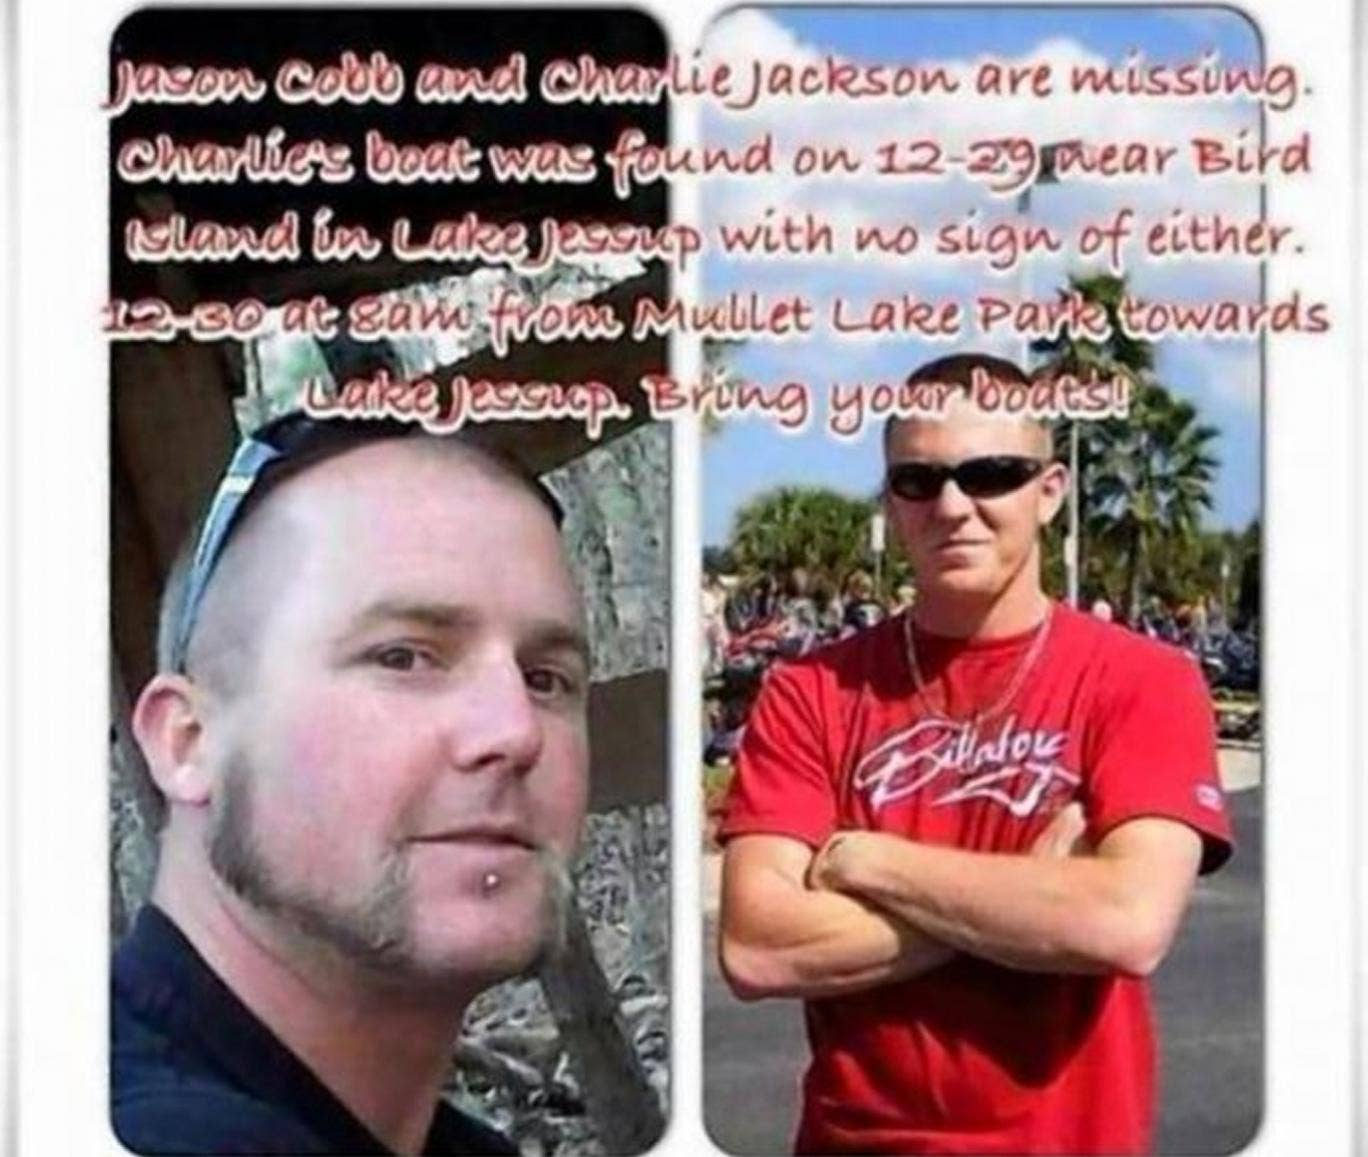 Friends and family of Jason Cobb (left) and Charlie Jackson (right) have appealed for help to find them on Facebook